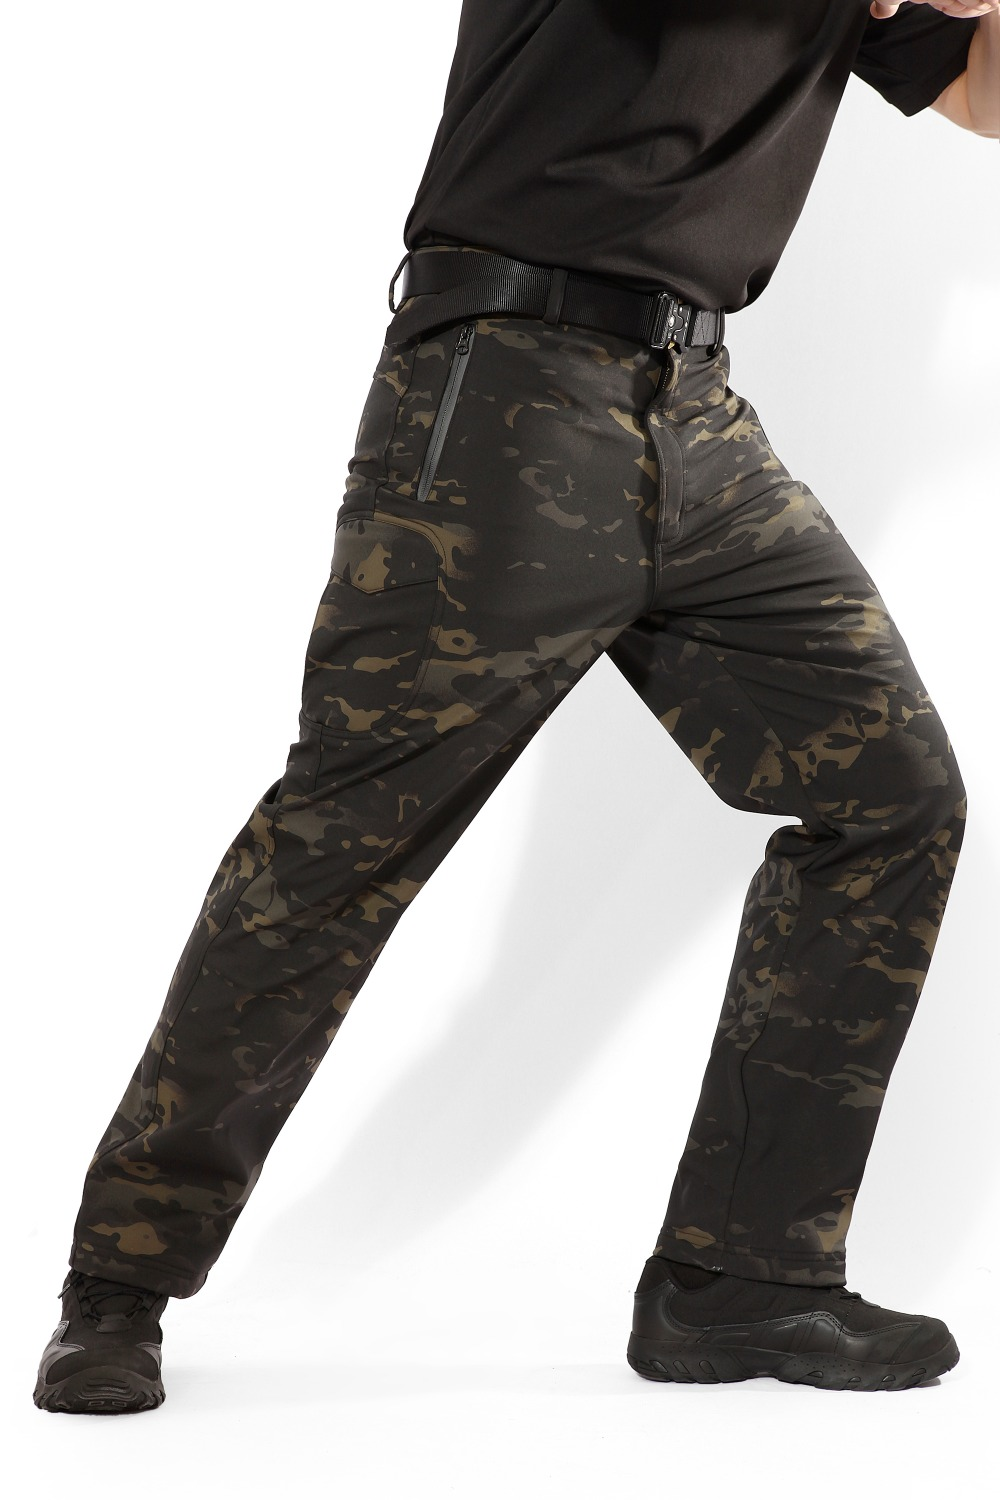 MEGE Soft Shell Tactical Camouflage Pants Men Combat Waterproof Military Cargo Warm Fleece Camo Winter Warm Army Modis Trousers 17